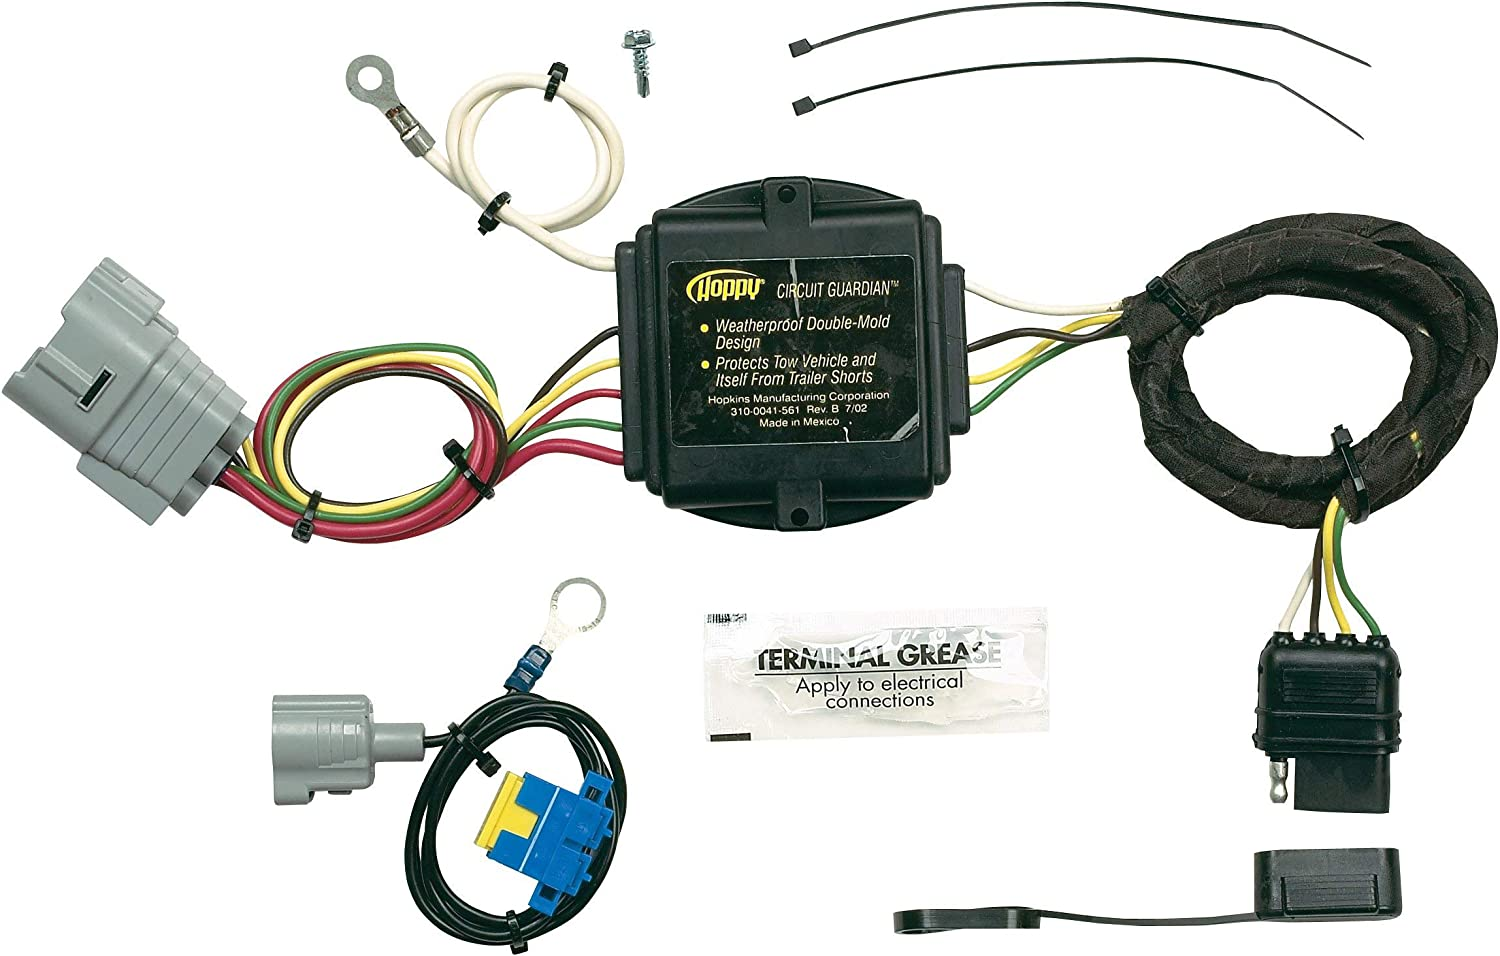 Amazon.com: Hopkins 43375 Plug-In Simple Vehicle Wiring Kit: Automotive | Tundra Tow Package Wiring |  | Amazon.com